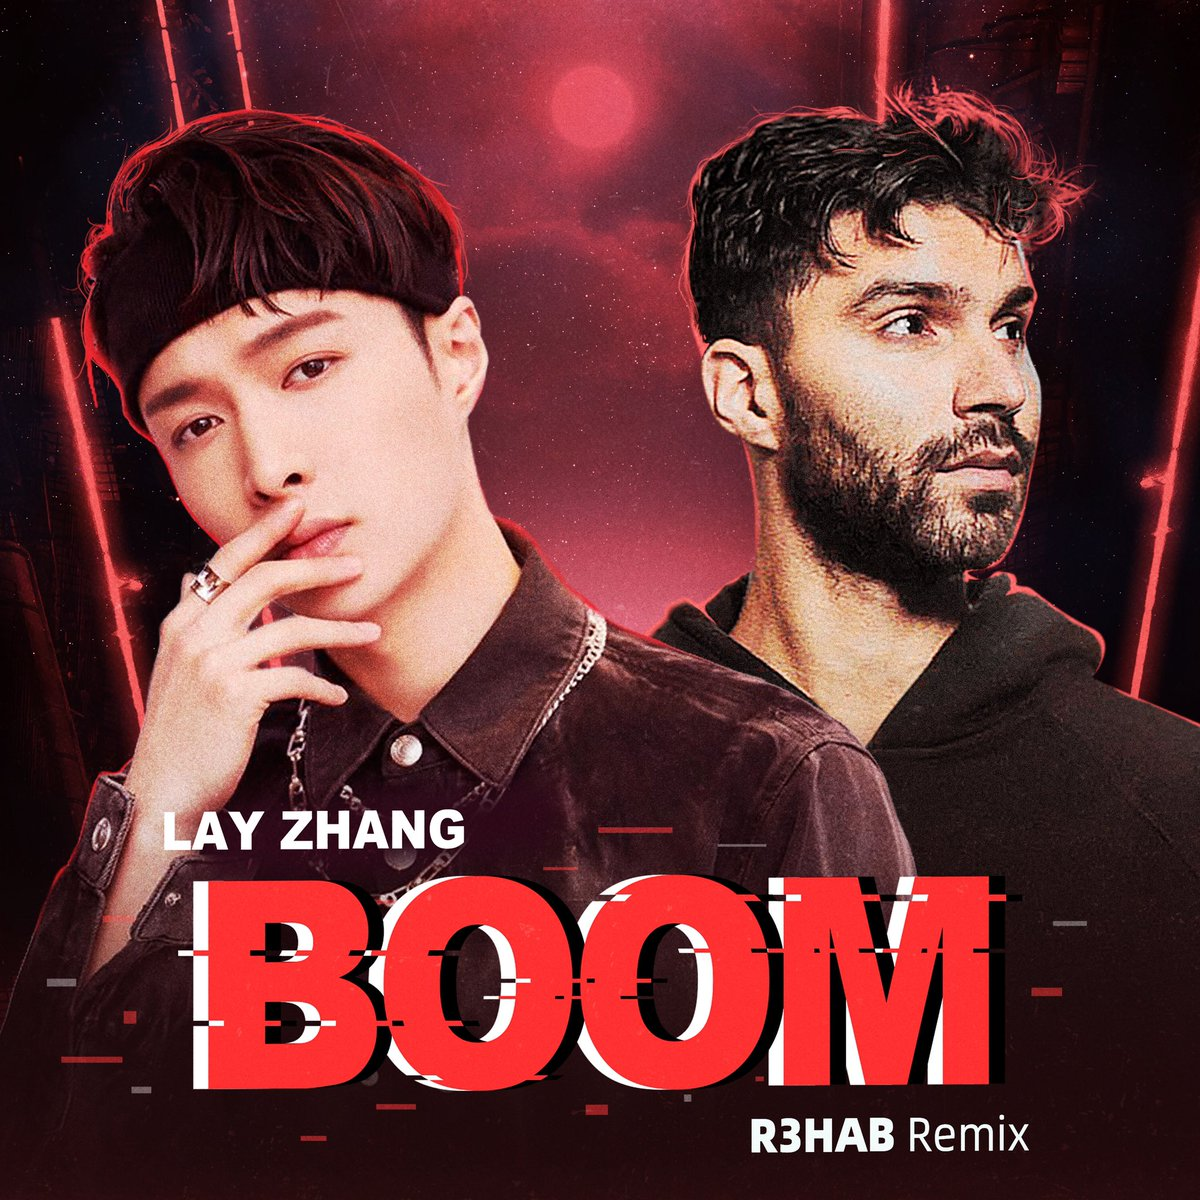 My remix of BOOM with @R3HAB is out now! I hope you like the new energy and vibe on it! LINK TO LISTEN ➡️ LAY.lnk.to/BOOM_R3HAB